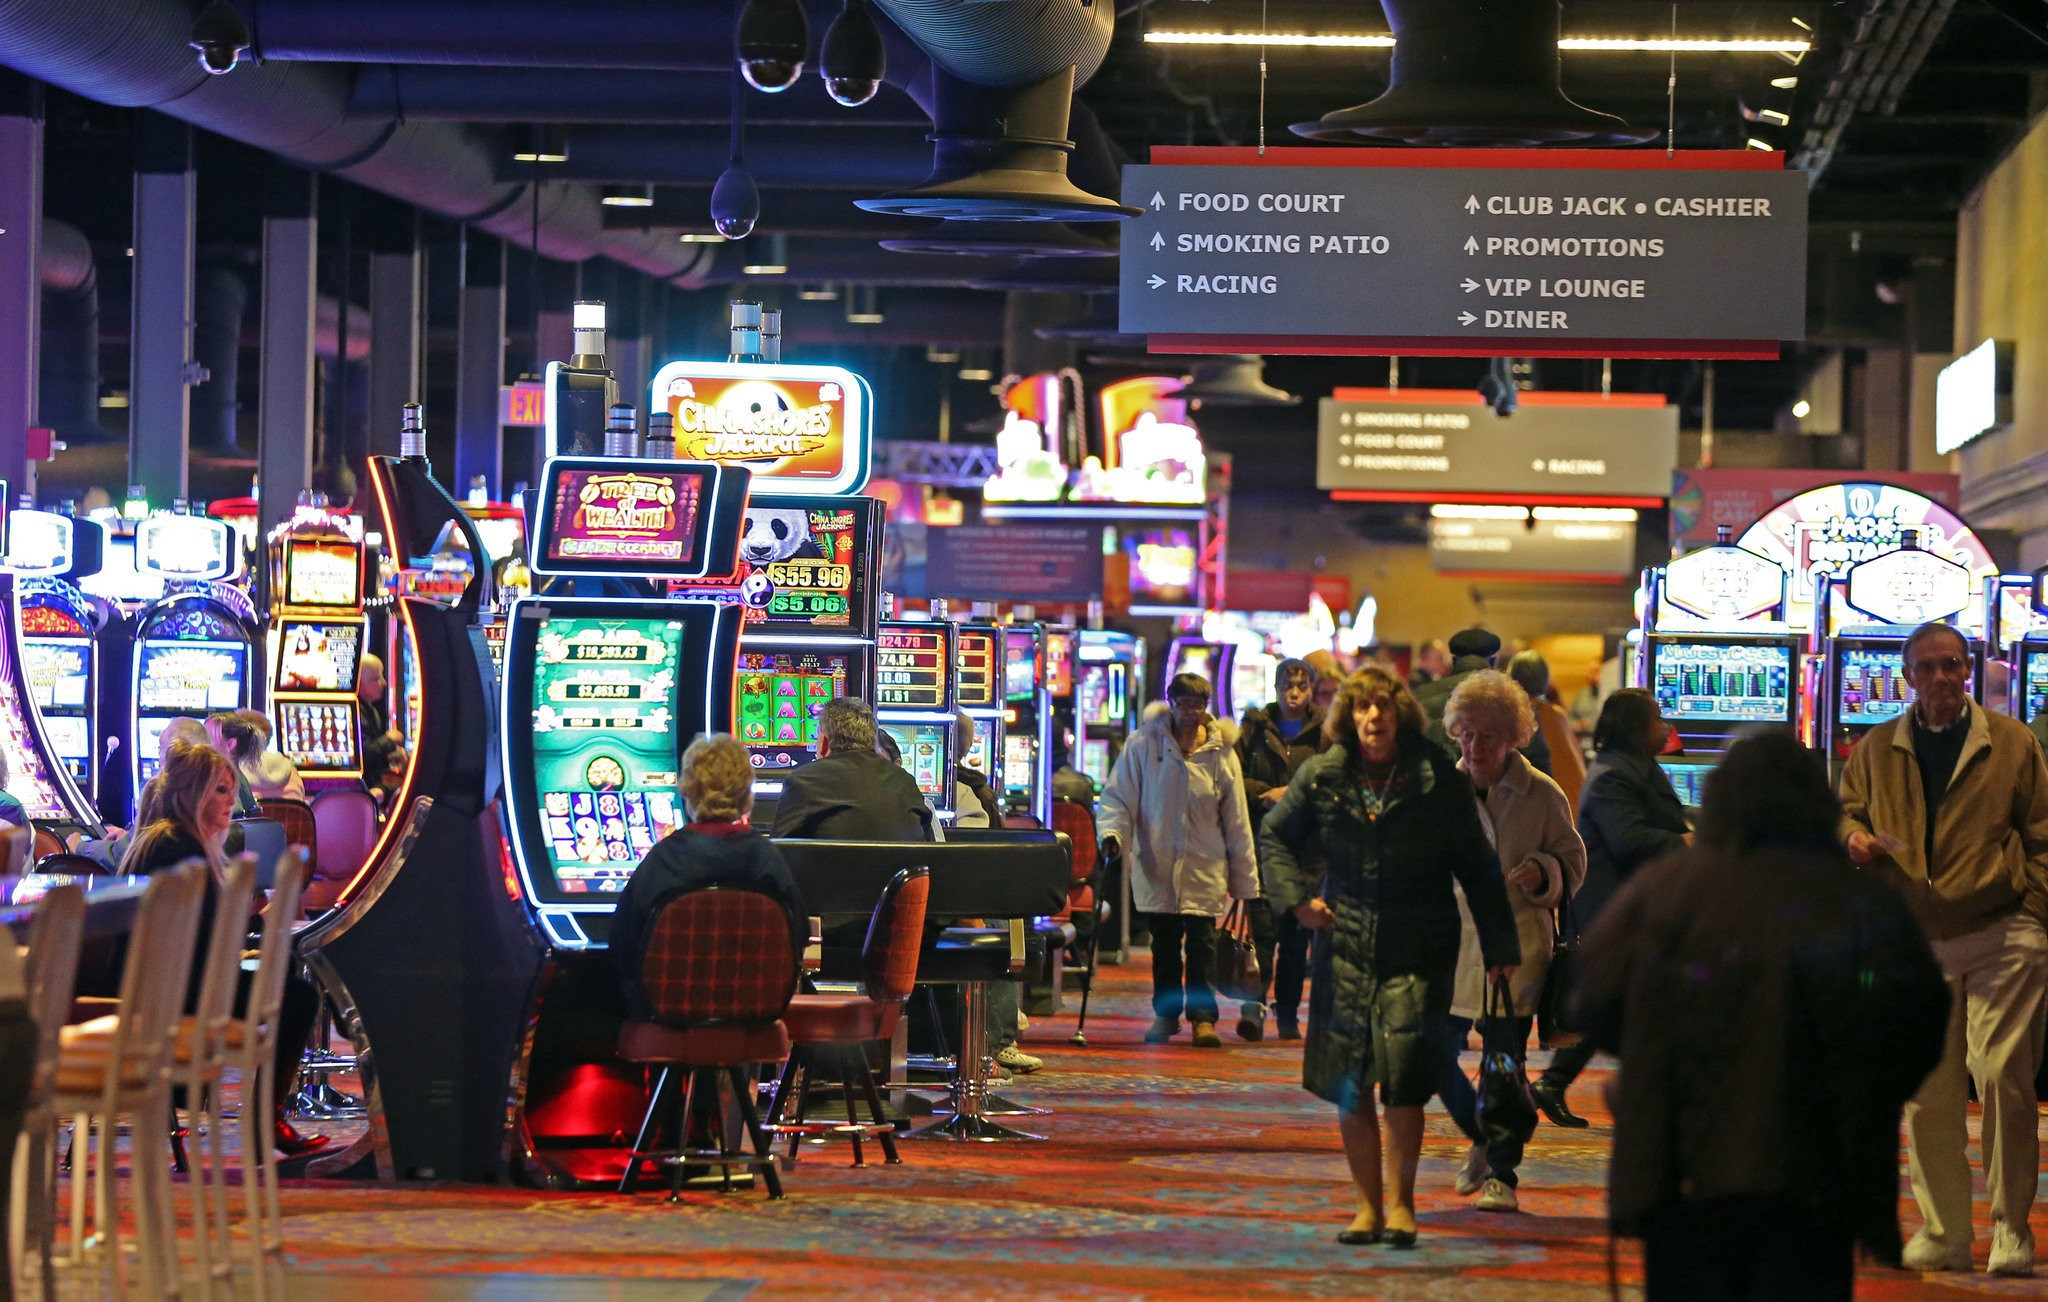 Q&A: Sports wagering in Ohio casinos, racinos and elsewhere - cleveland.com